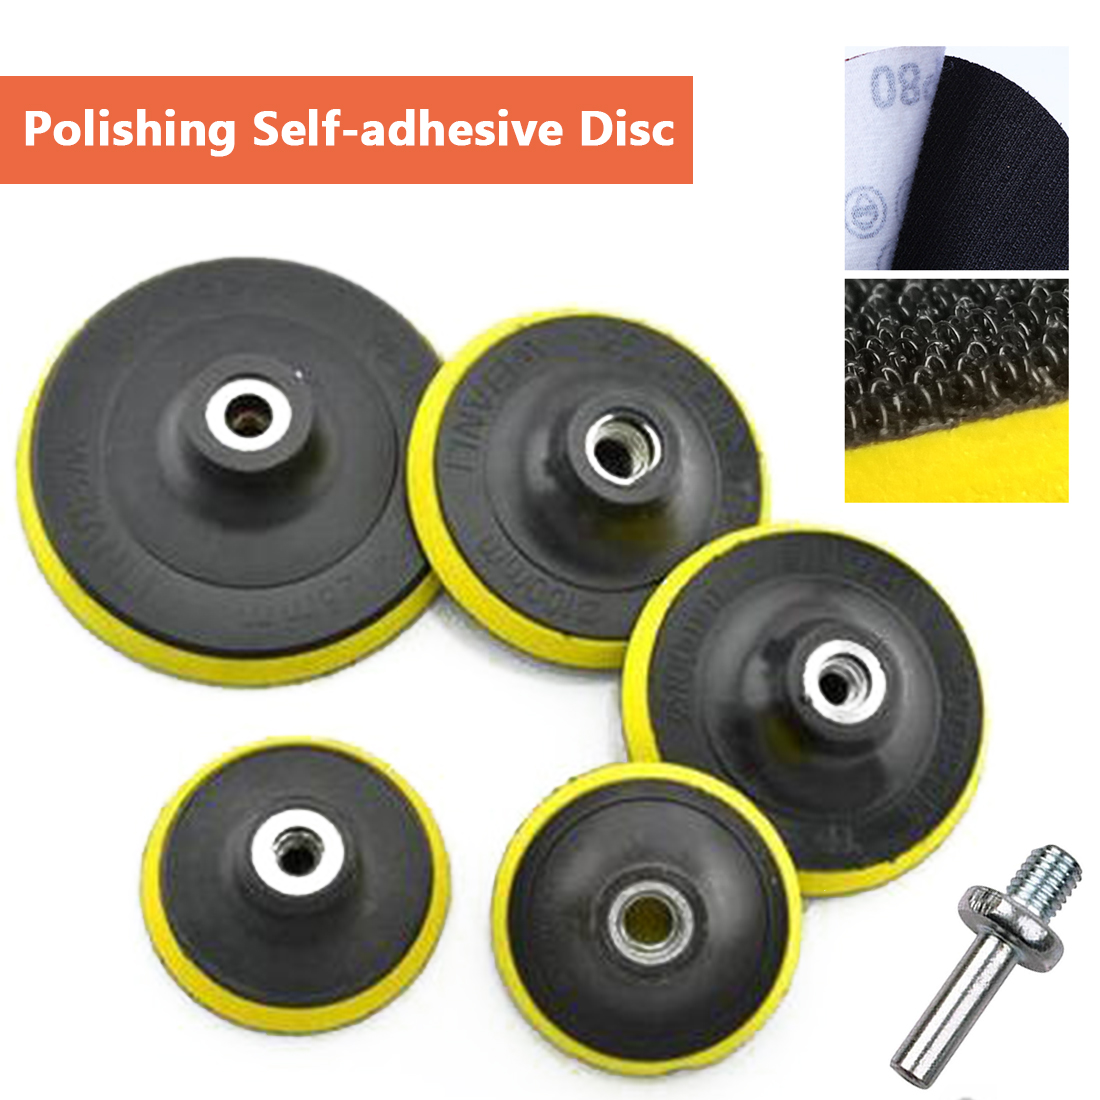 Self-adhesive Polishing Pad 3